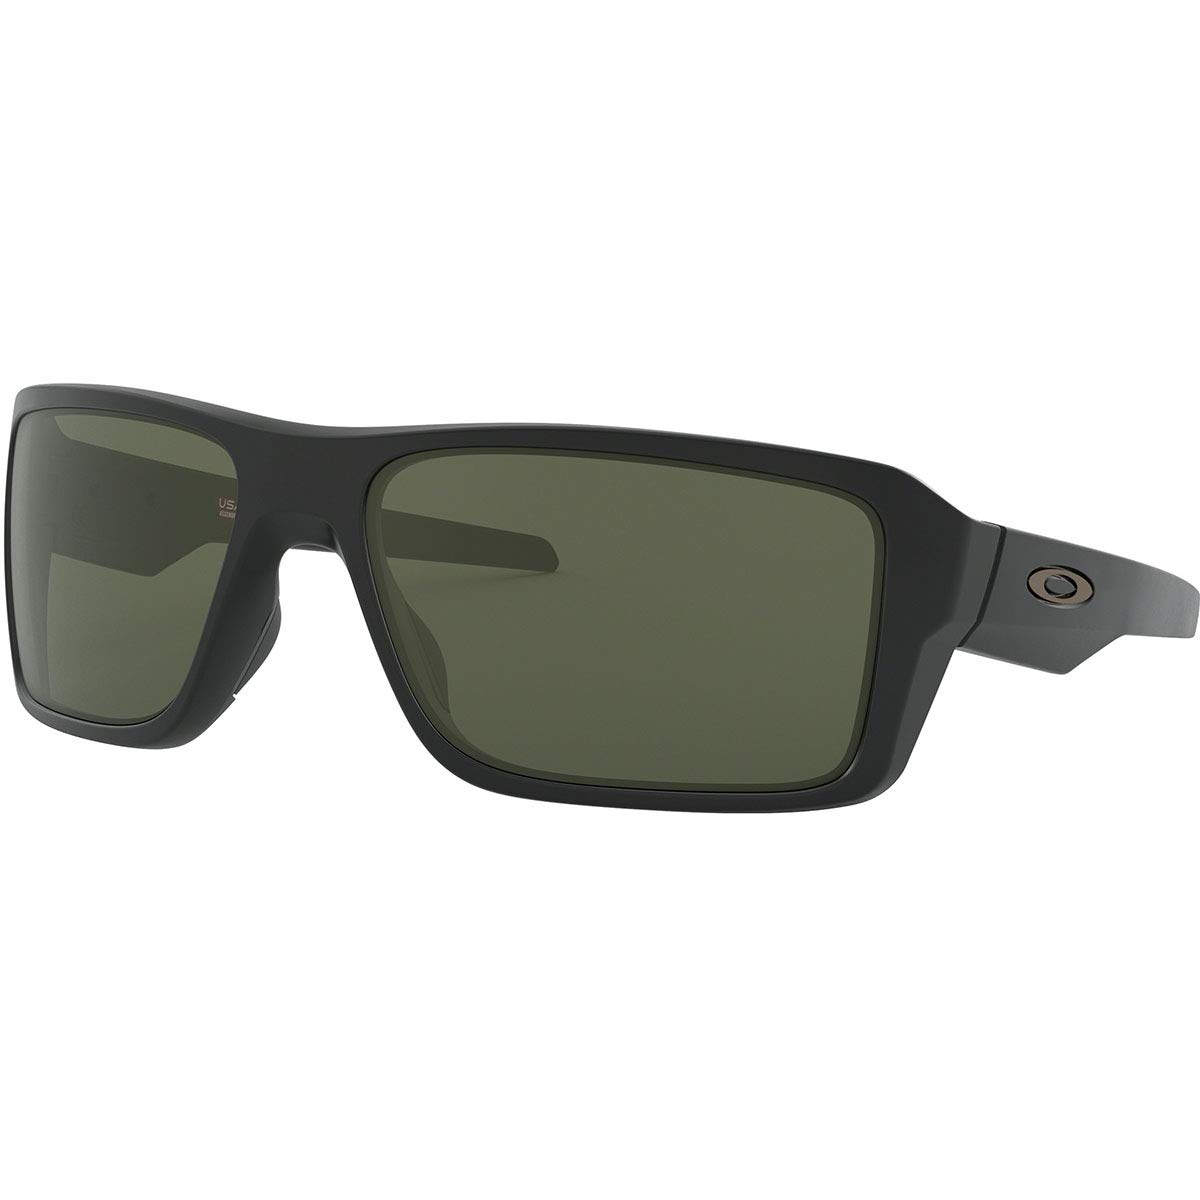 Oakley Men's OO9380 Double Edge Rectangular Sunglasses, Matte Black/Dark Grey, 66 mm by Oakley